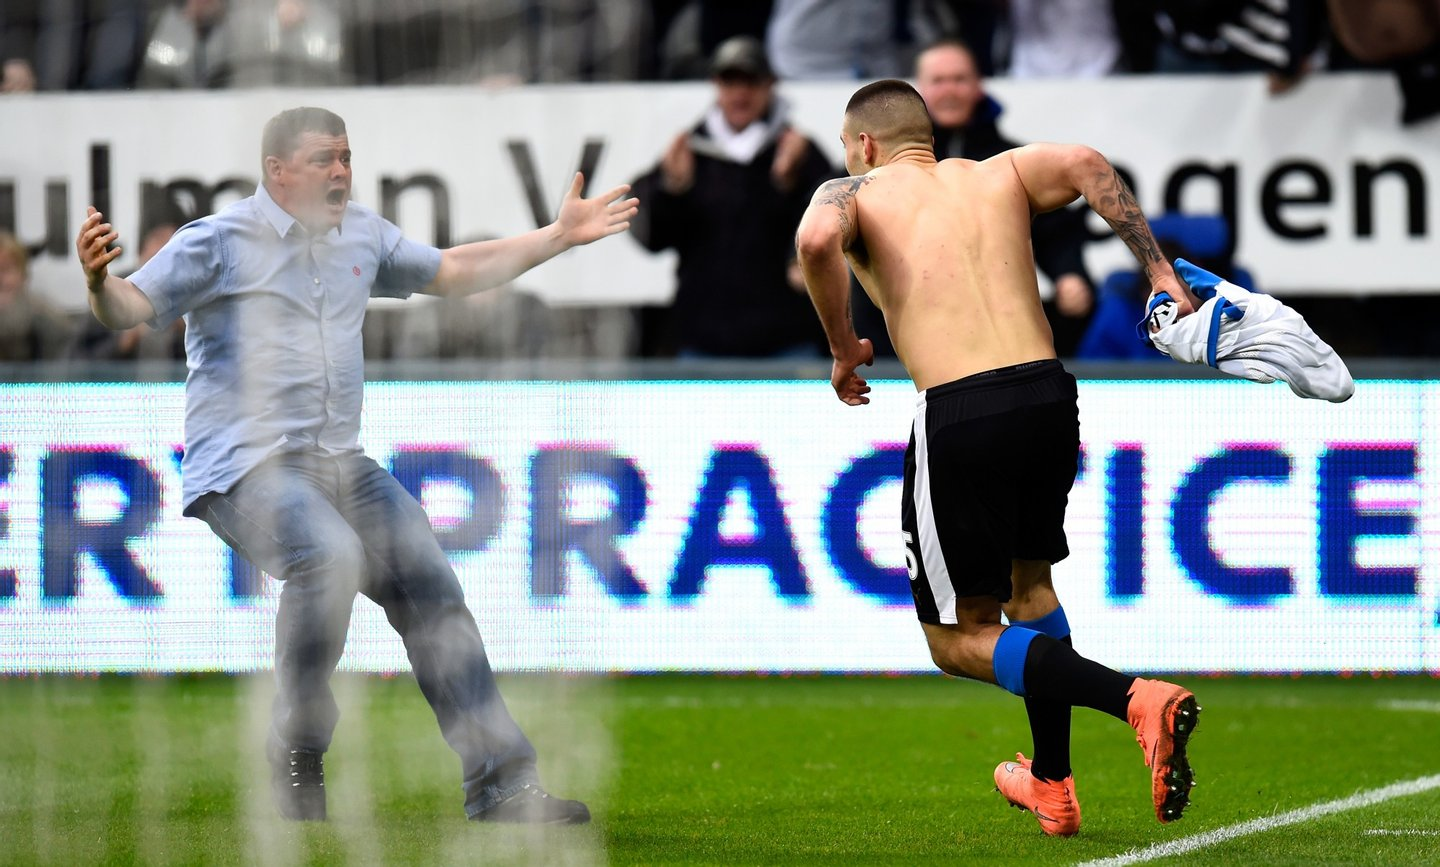 NEWCASTLE UPON TYNE, ENGLAND - MARCH 20: Aleksandar Mitrovic of Newcastle United ceebrates with a fan as he celebrates scoring their first and equalising goal during the Barclays Premier League match between Newcastle United and Sunderland at St James' Park on March 20, 2016 in Newcastle upon Tyne, United Kingdom. (Photo by Stu Forster/Getty Images)